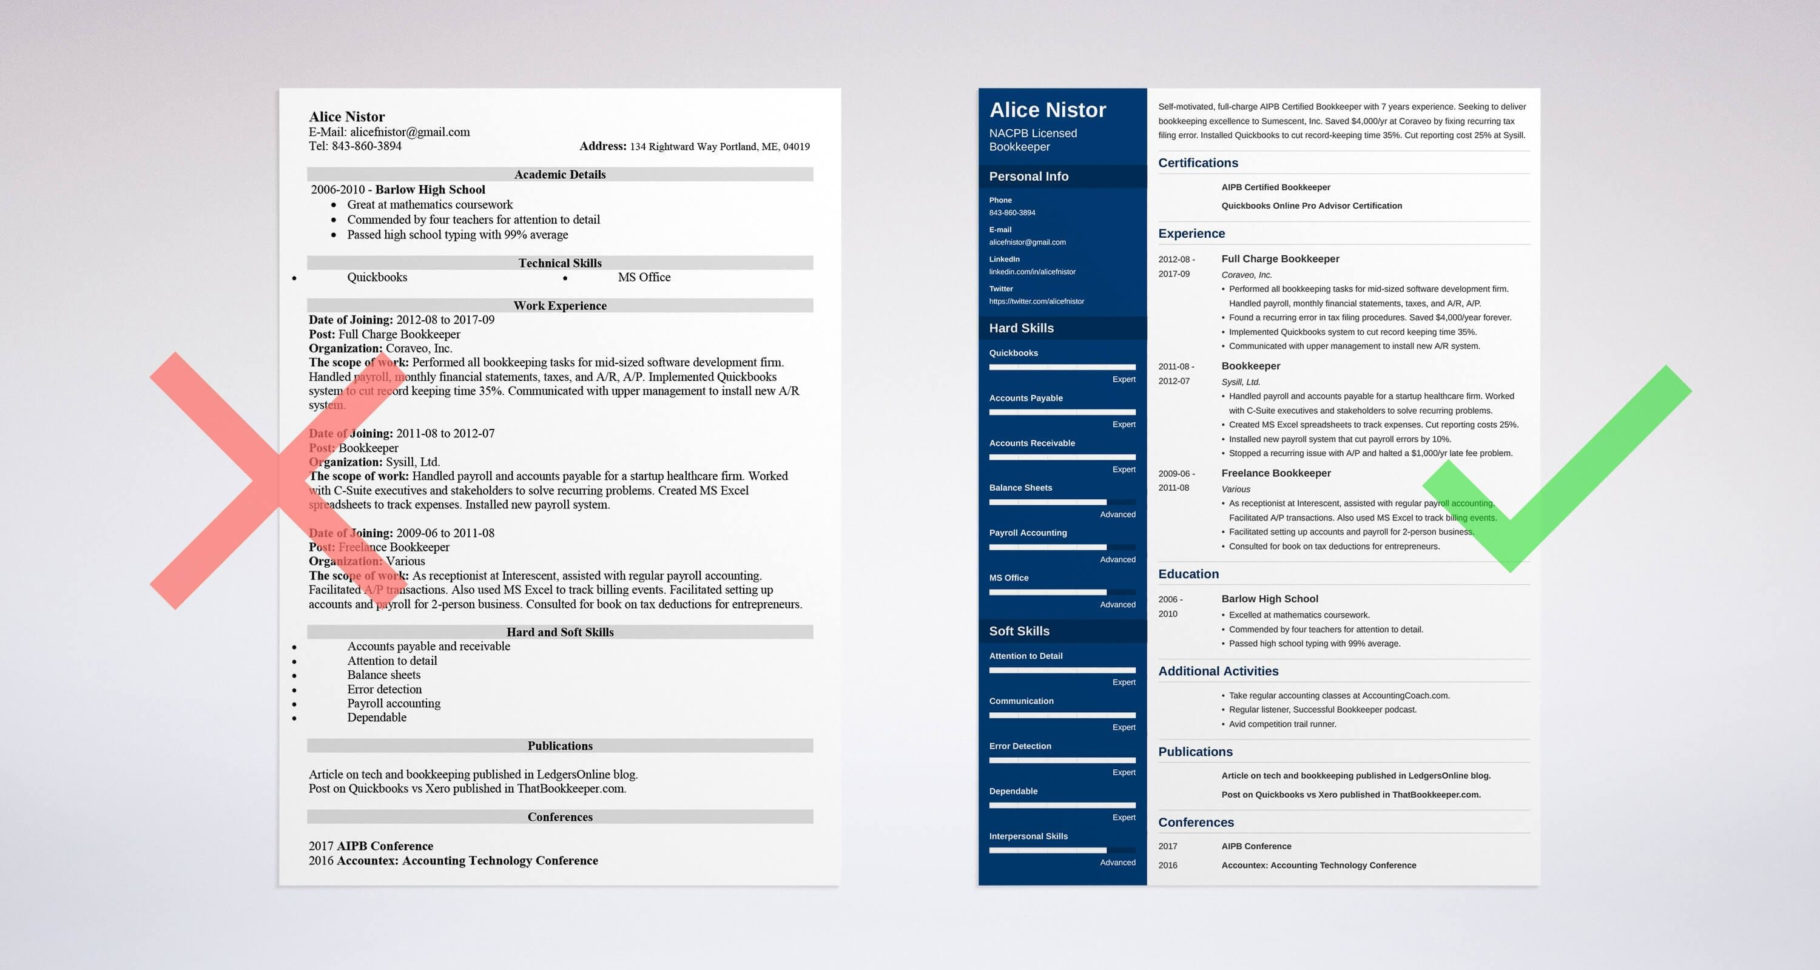 bookkeeping resume templates free  Bookkeeper Resume: Sample And Complete Guide [ 20 Examples] Throughout Bookkeeping Resume Templates Bookkeeping Resume Templates Bookkeeping Spreadshee